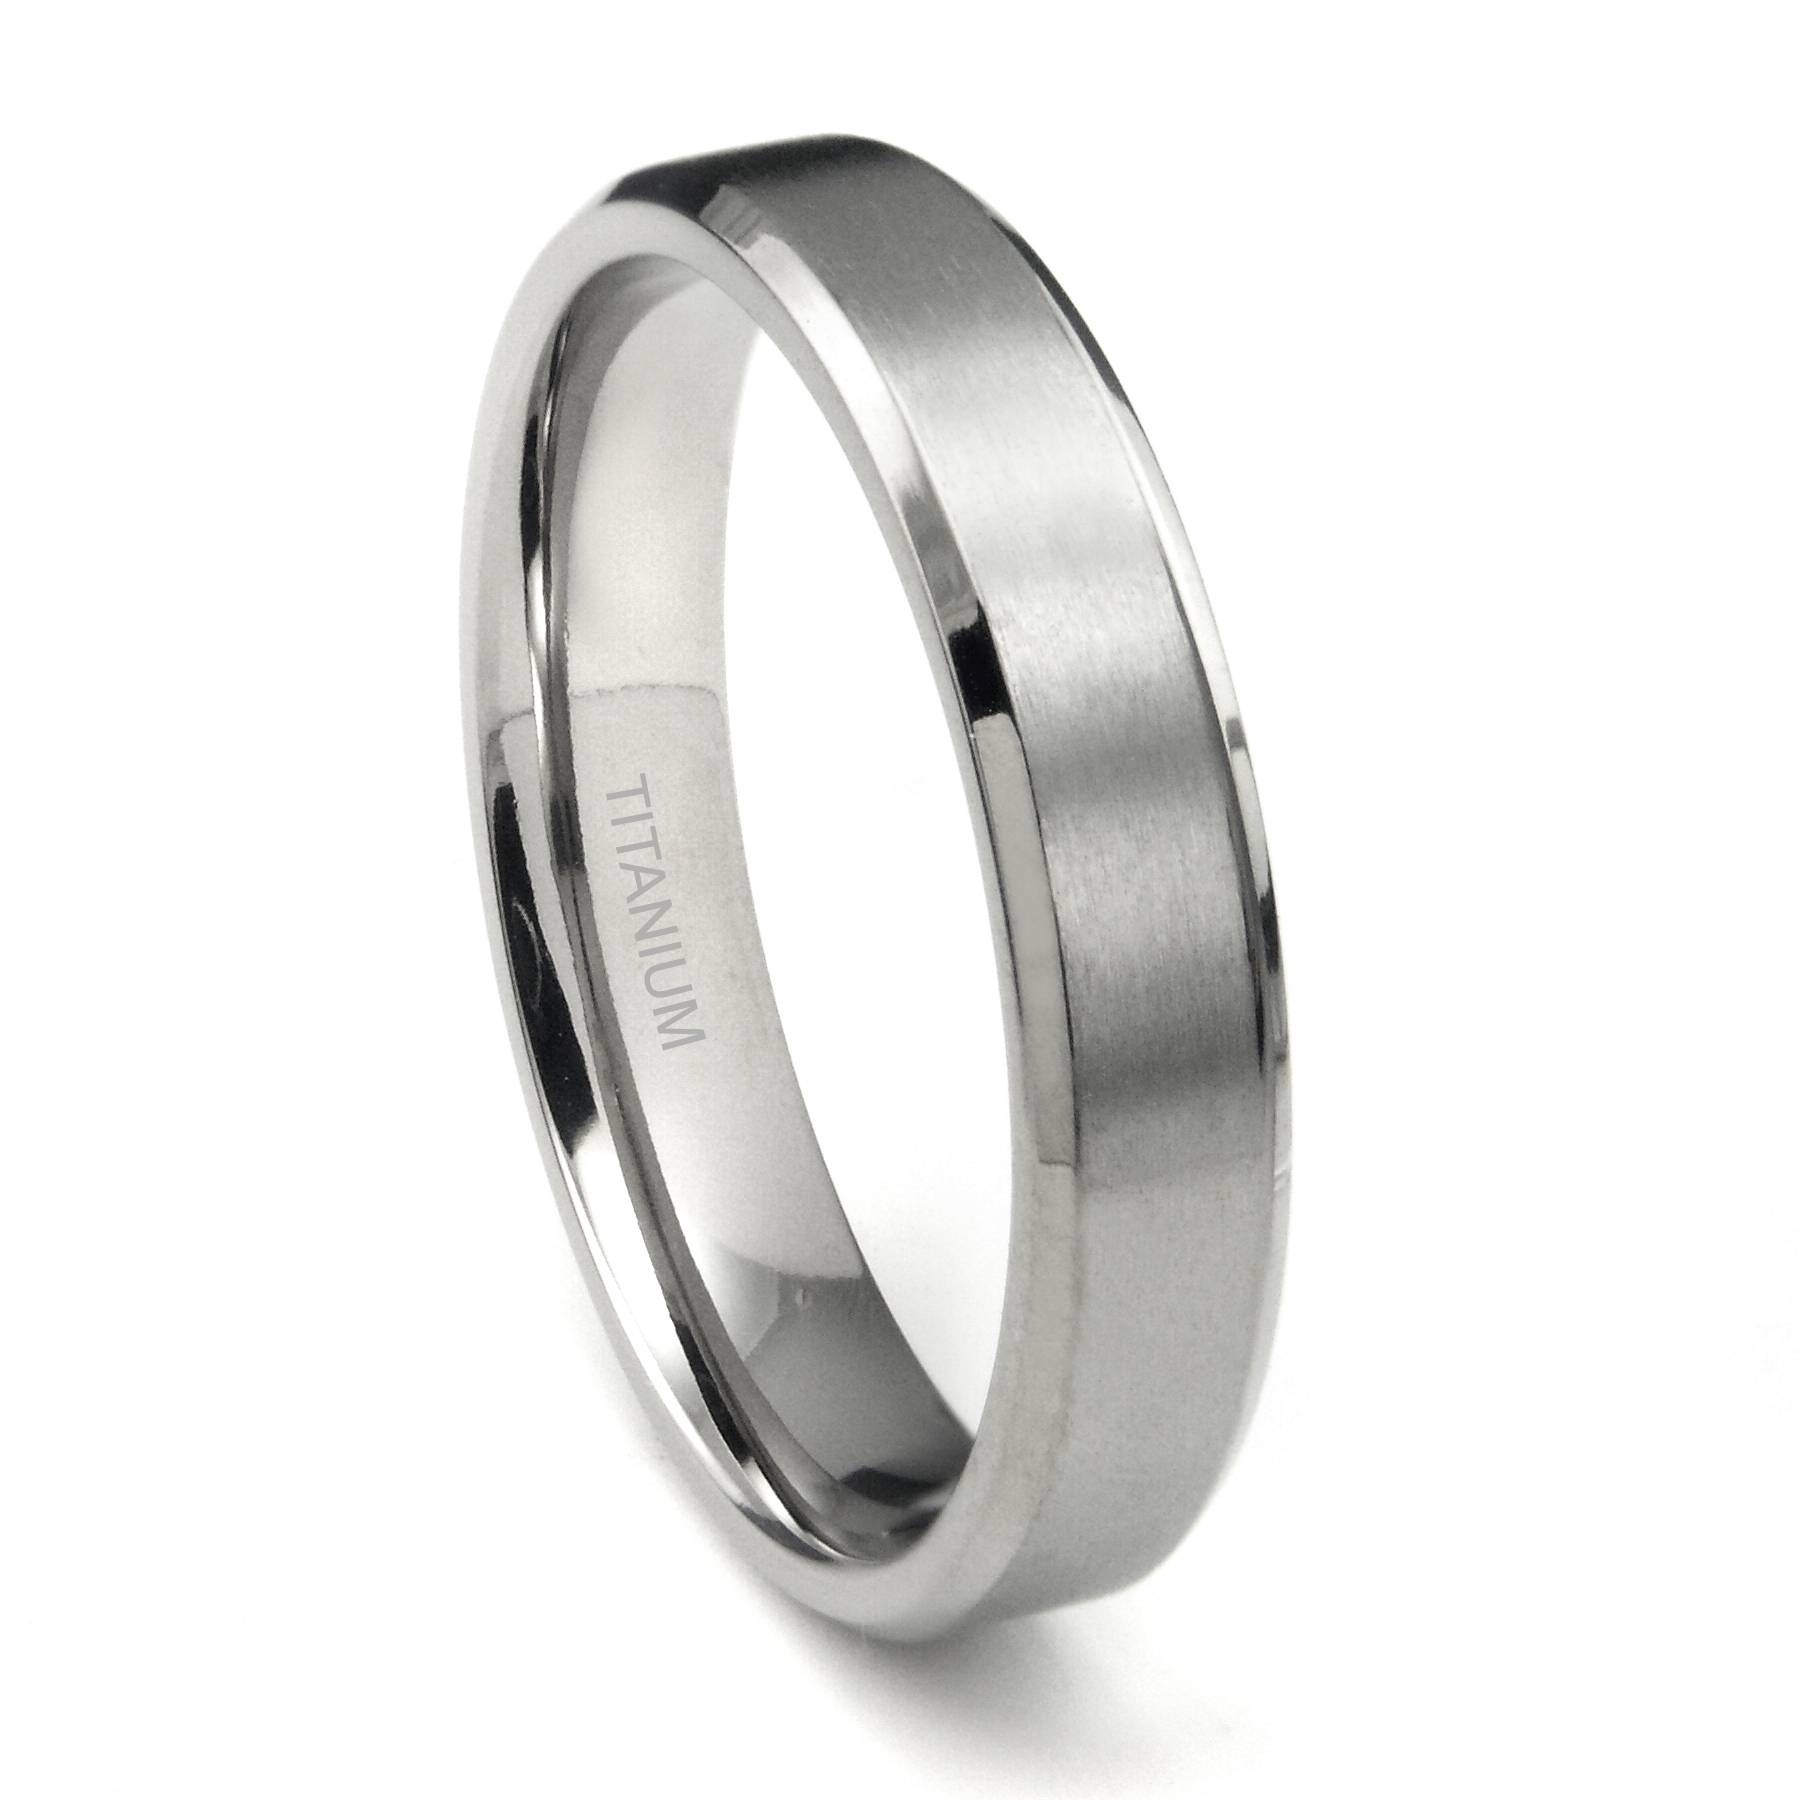 Titanium 5Mm Beveled Wedding Band Ring W/ Brushed Center Pertaining To 2018 Mens Beveled Wedding Bands (Gallery 4 of 15)